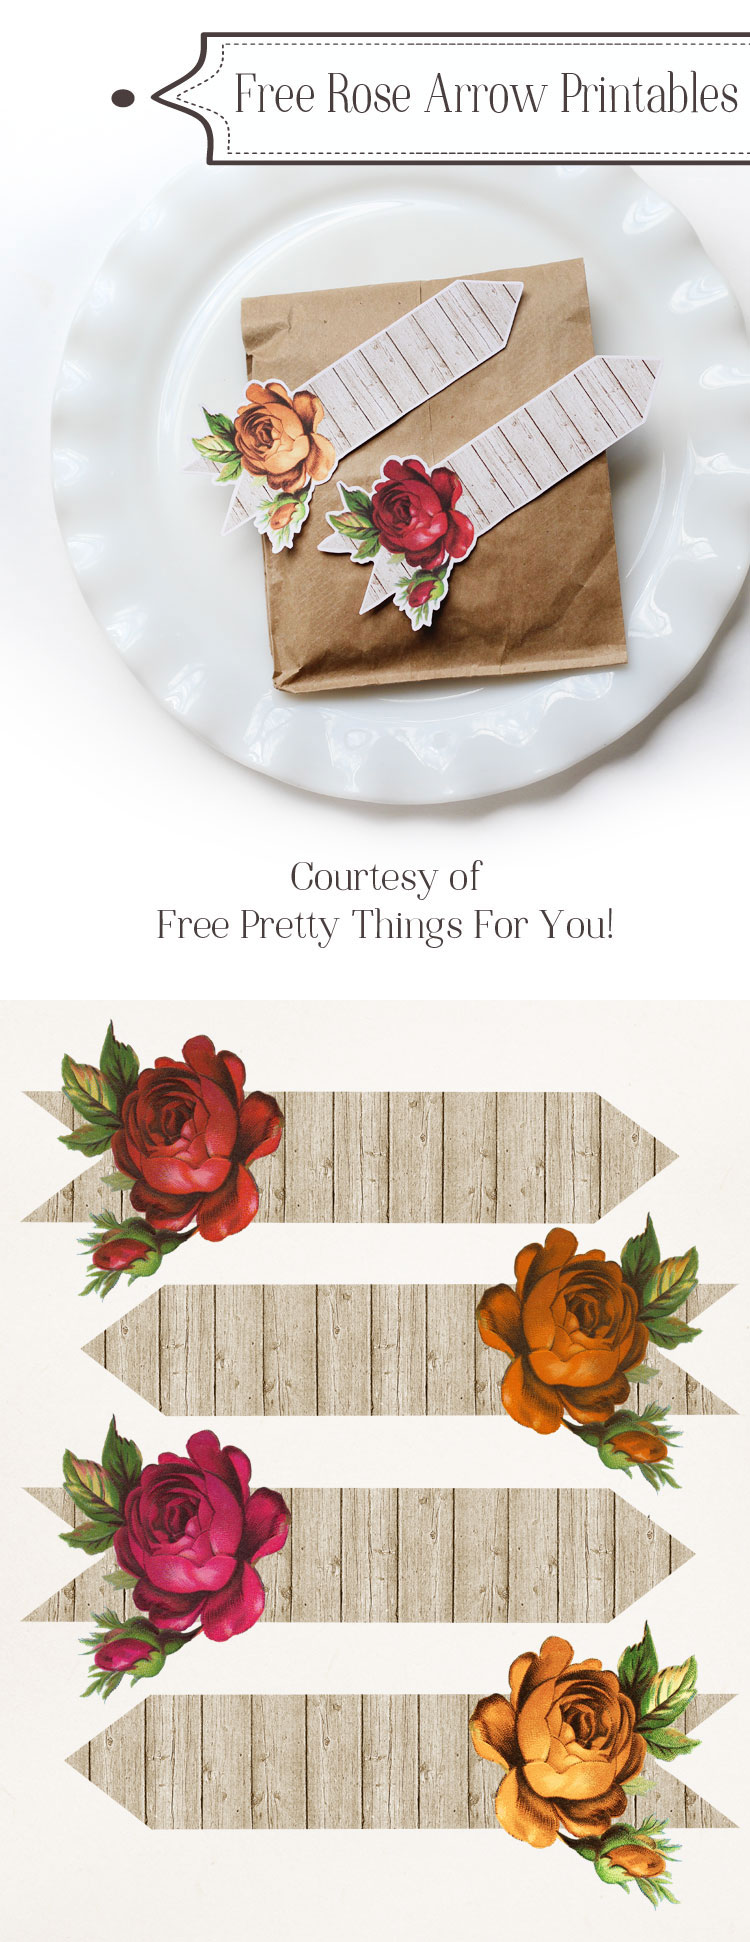 Packaging_Design_Free_Rose_Arrow_Printables_FPTFY_5